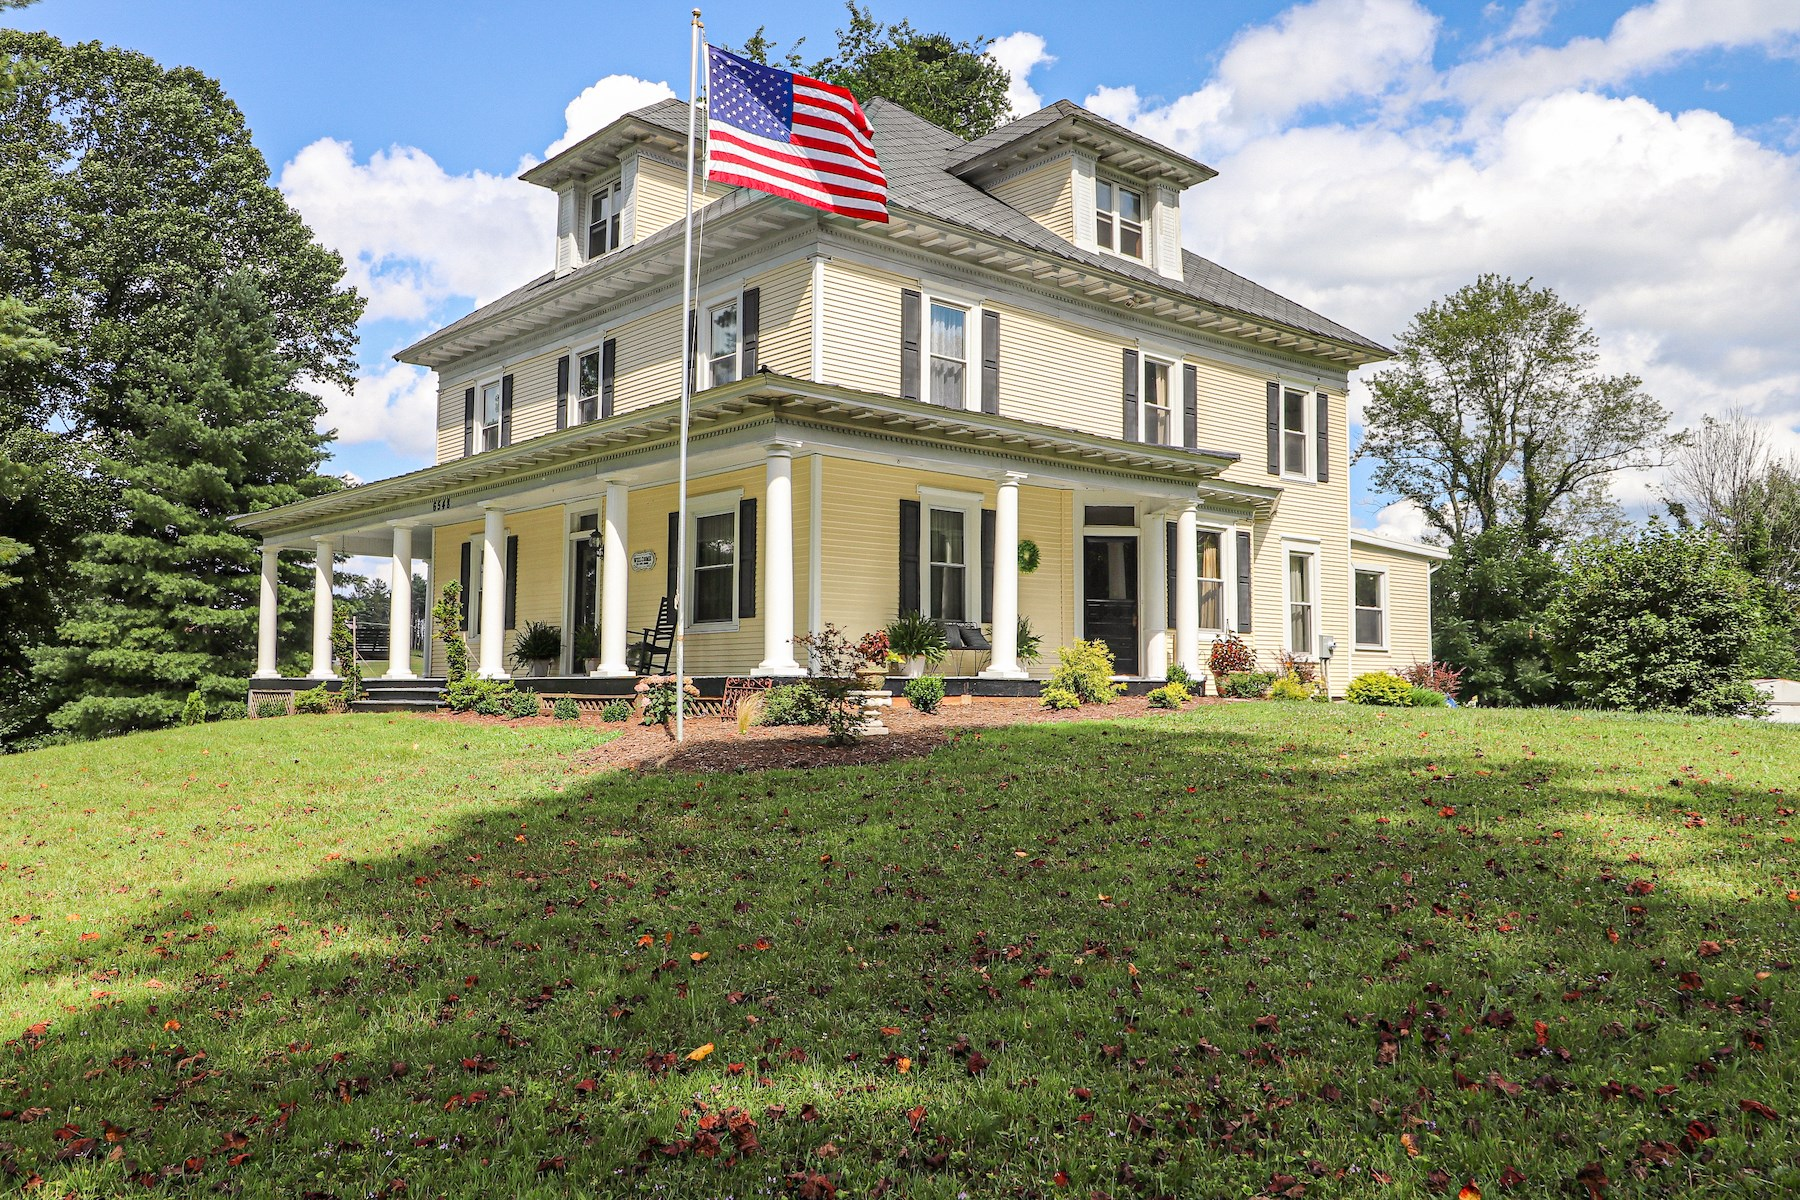 Beautiful Historic Country Home for Sale in Check VA!